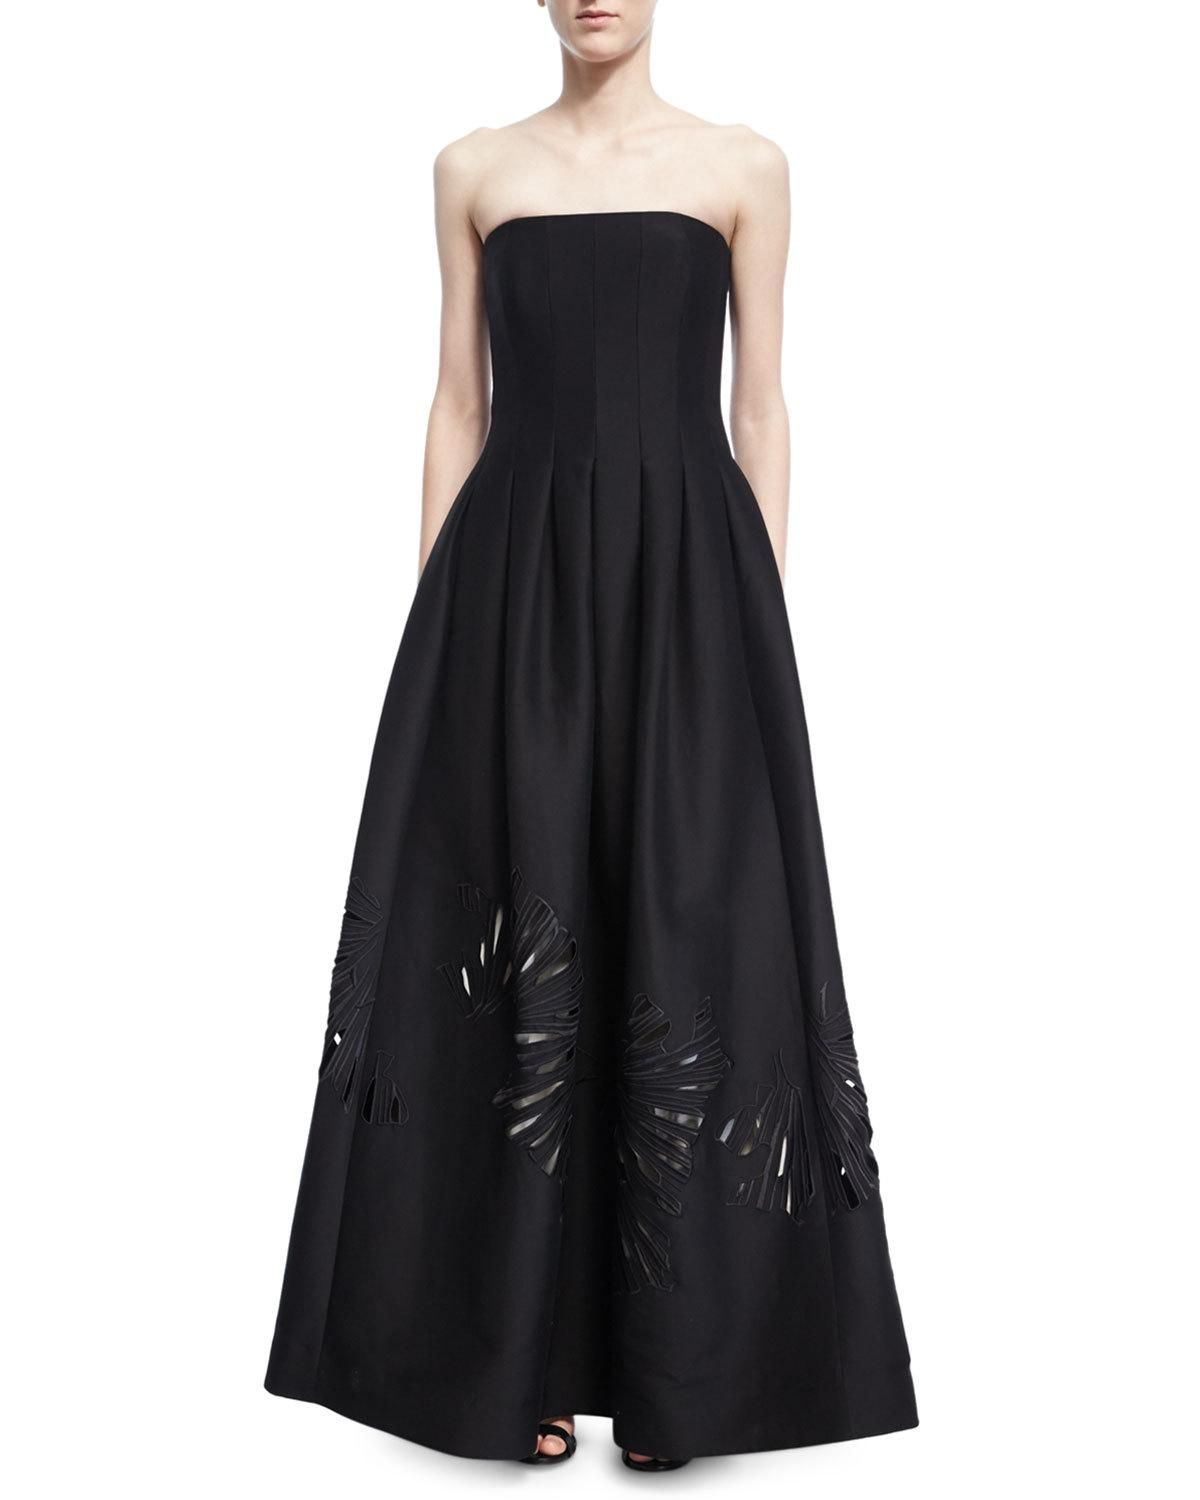 Strapless Seamed Structured Ball Gown | Halston heritage, Free ...